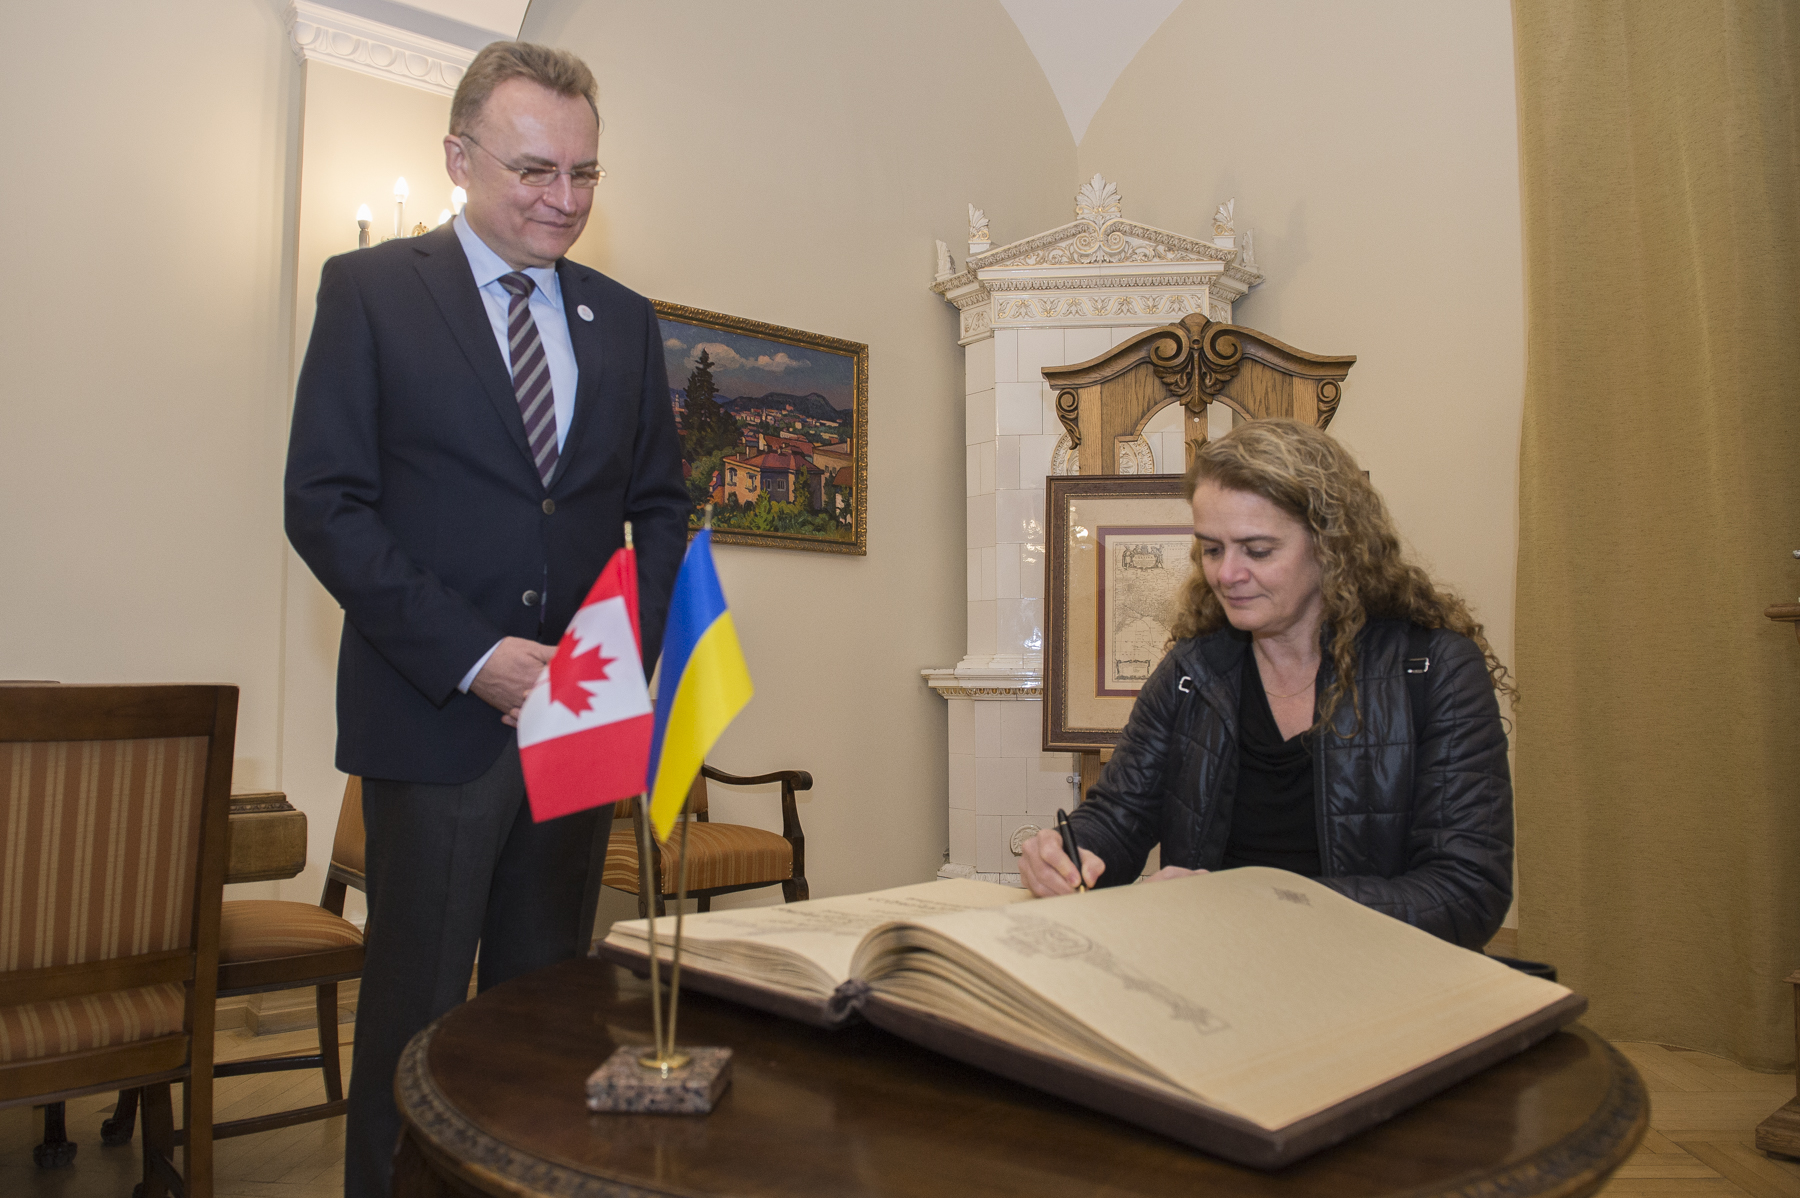 In the morning, Her Excellency met with Andriy Sadovyi, the Mayor of Lviv, and she signed the city's guest book.